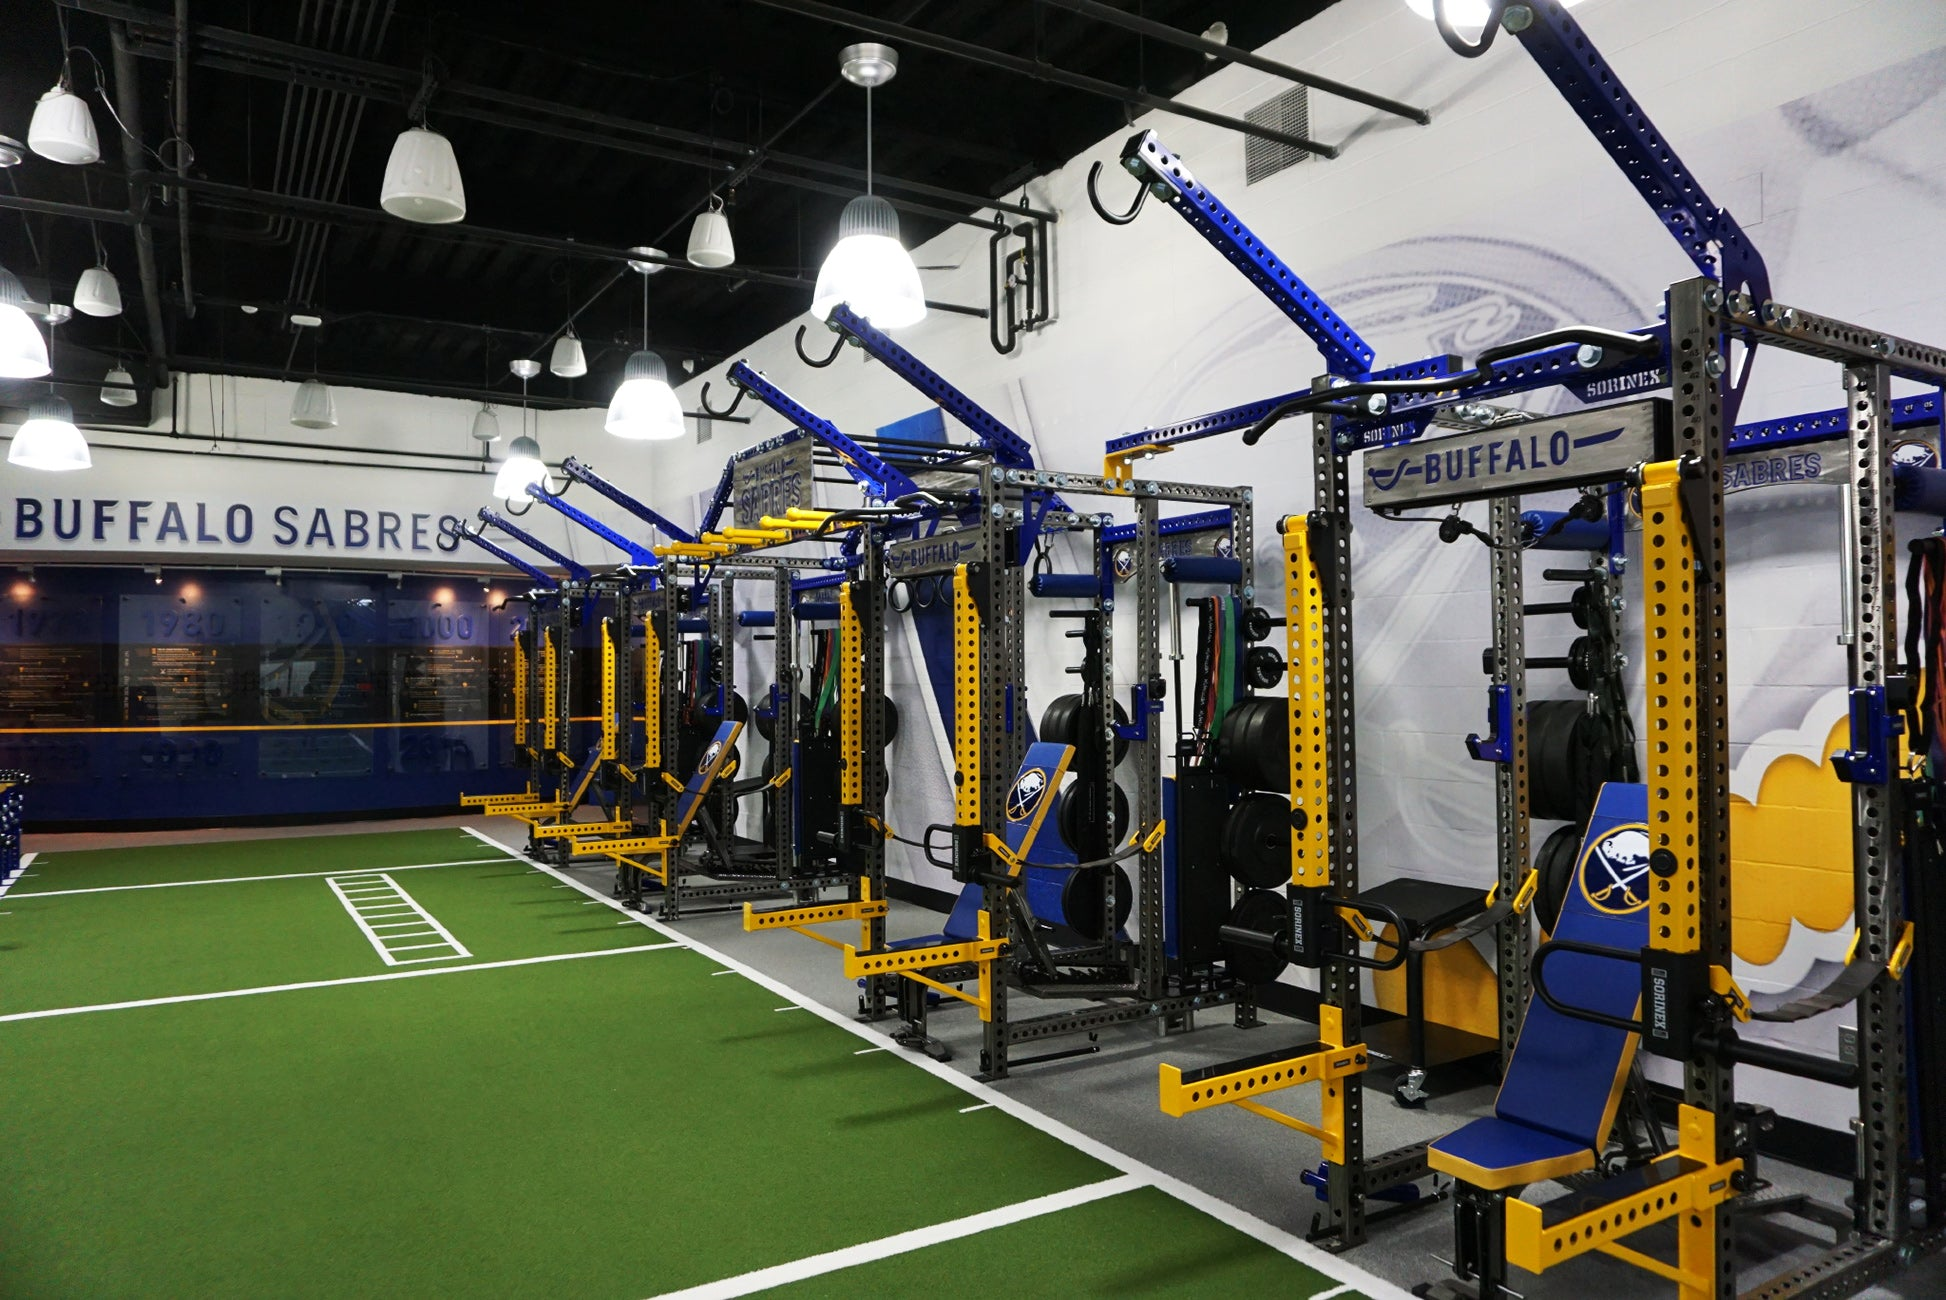 Buffalo Sabres Weight room